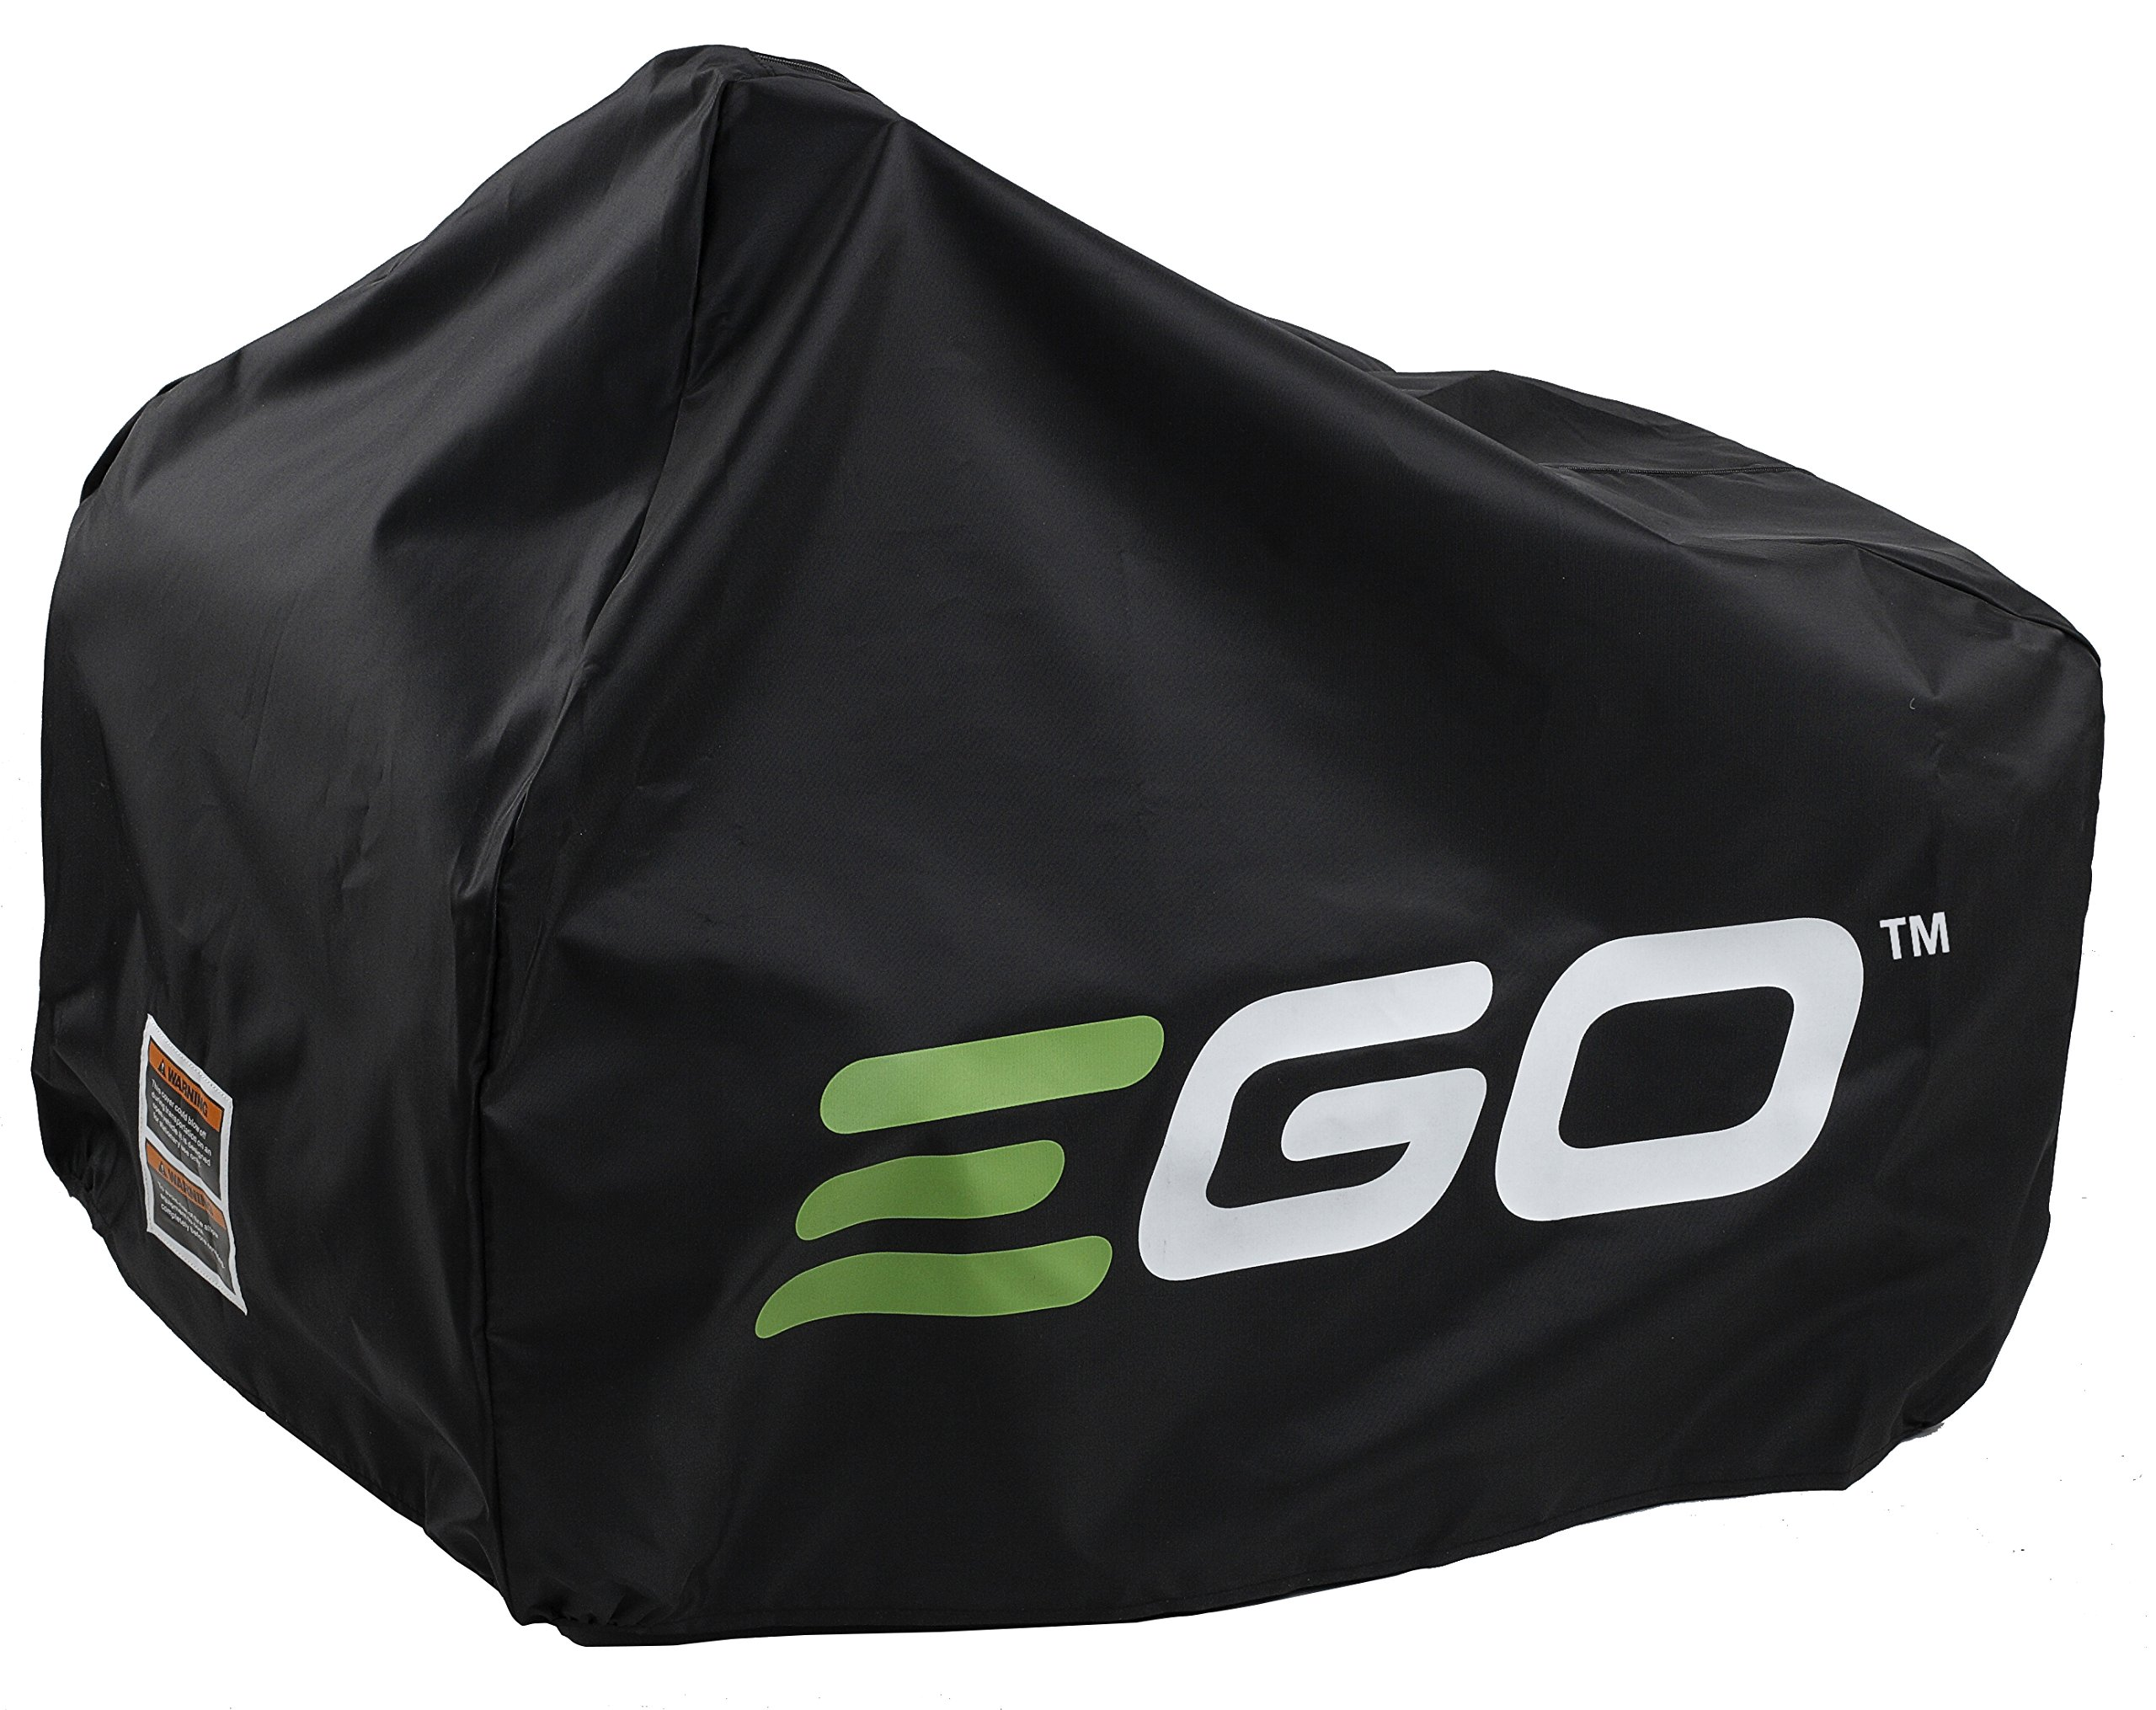 EGO Power+ CB002 Snow Blower Cover Durable Fabric to Protect Against Dust, Dirt and Debris by EGO Power+